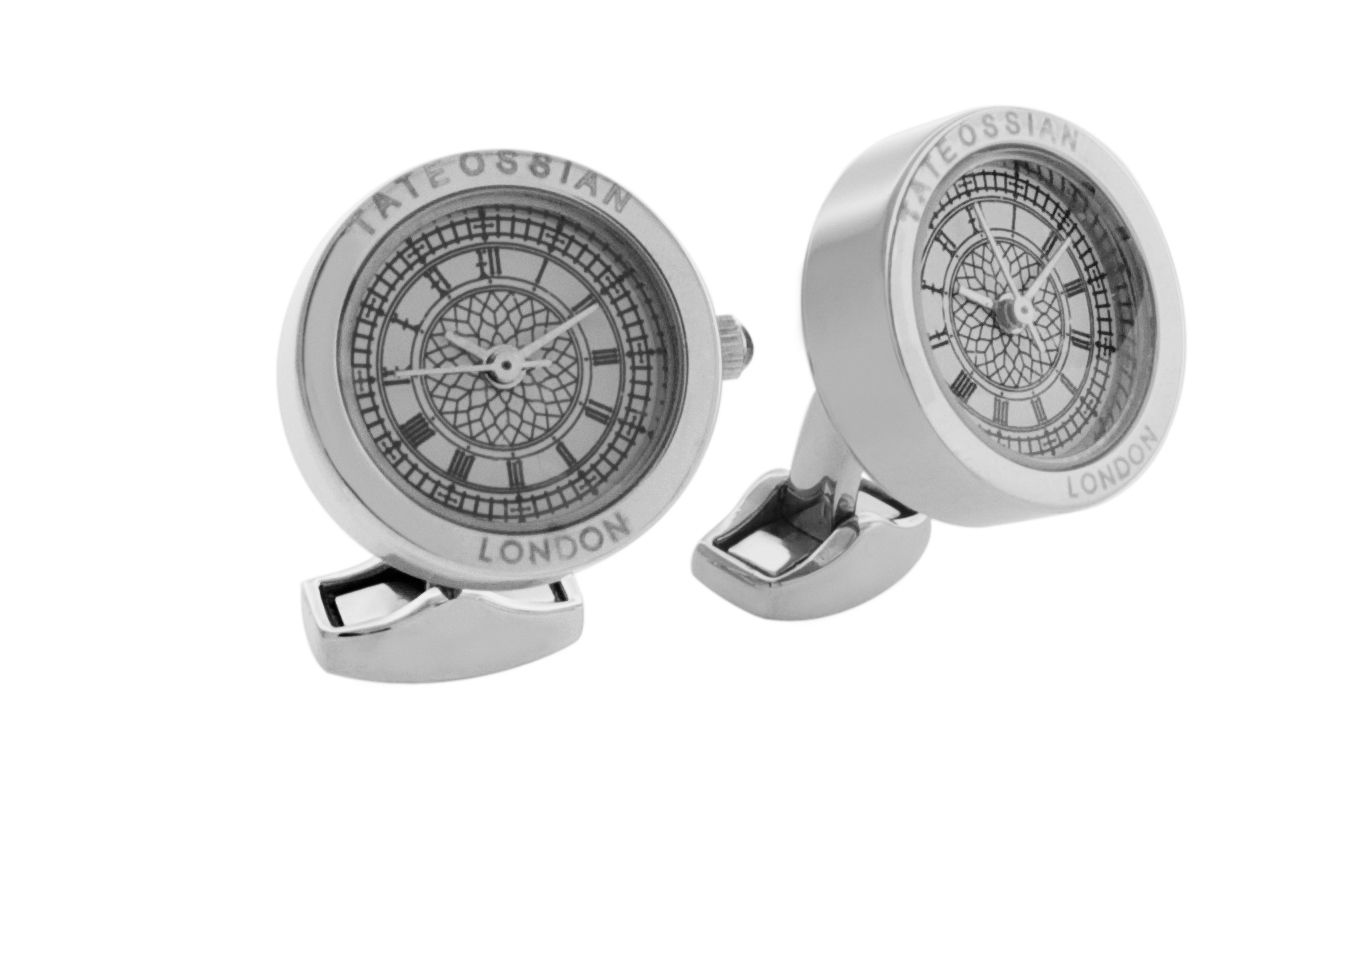 Tateossian Tateossian Stainless Steel Stainless Steel Plated Cufflinks, White